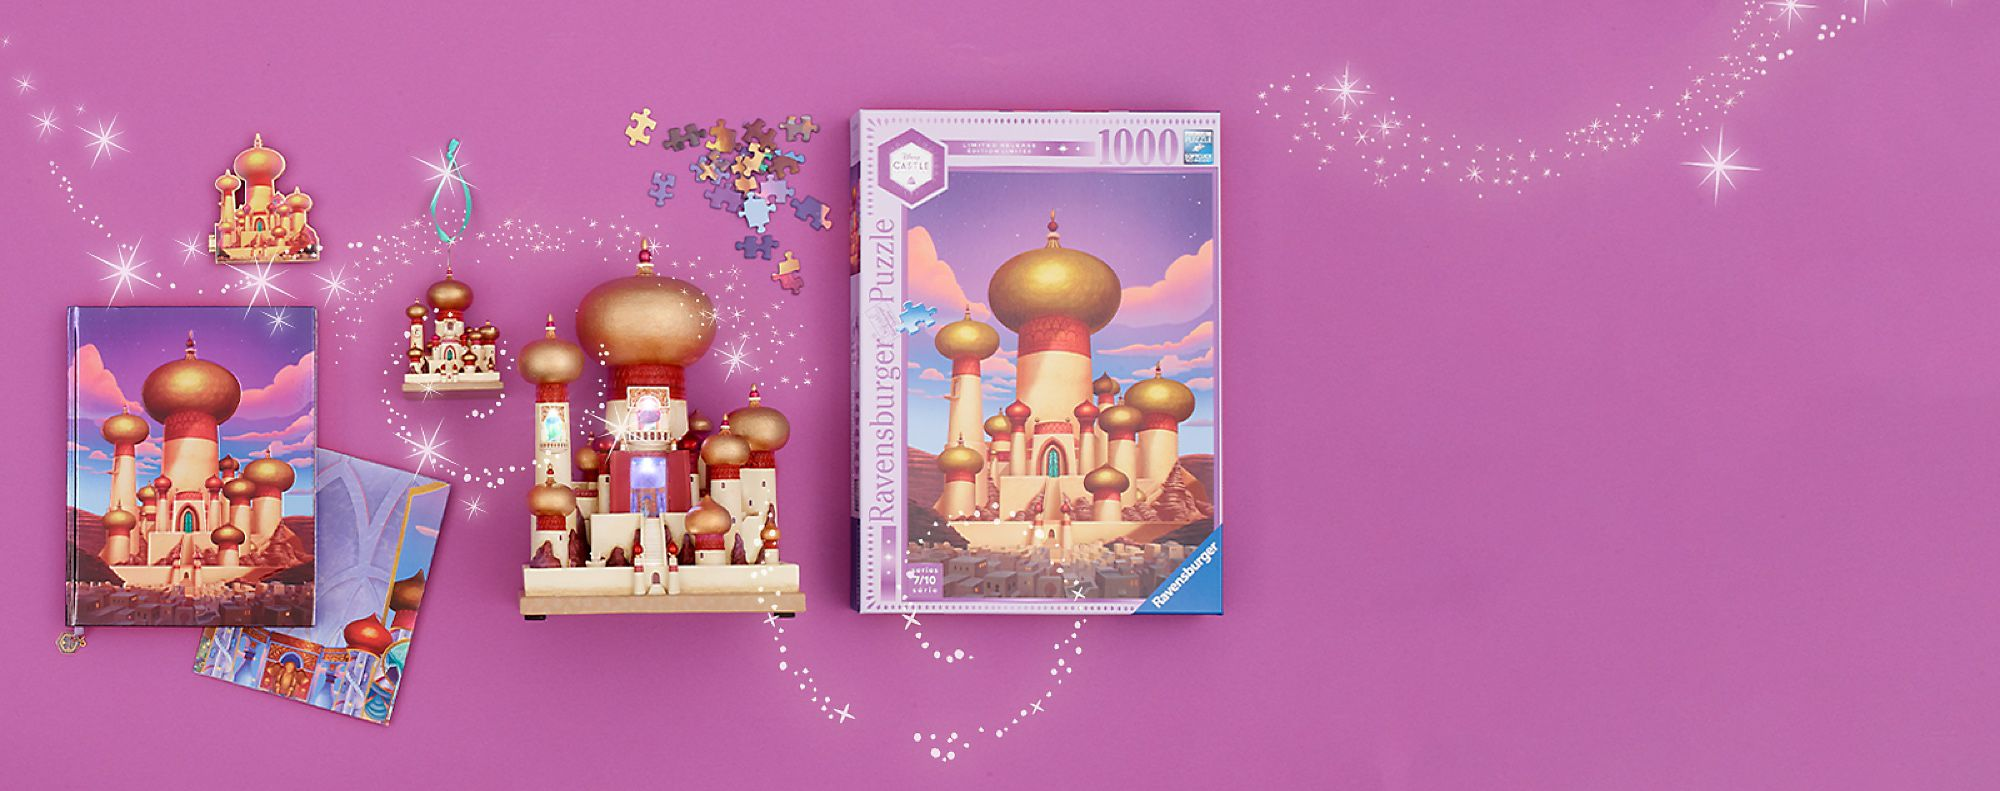 Our Dazzling New Collection This series features an ornament, a light-up figurine, a puzzle, a pin and a journal